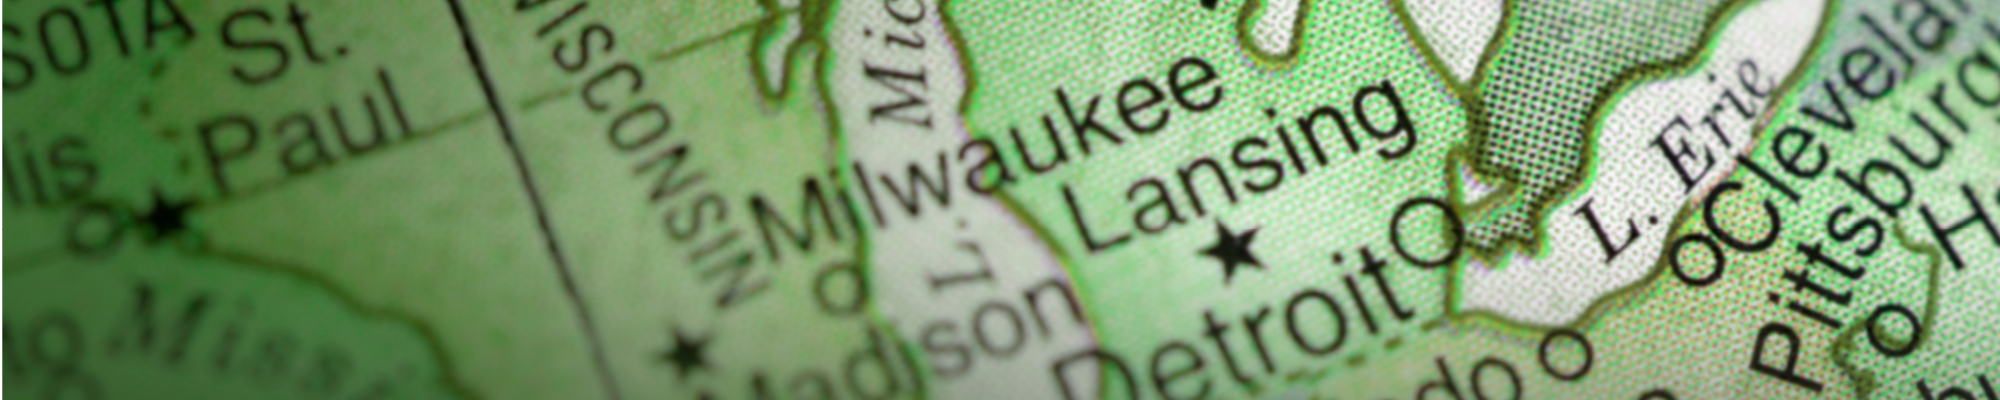 Close up of a map focusing on Michigan and Wisconsin